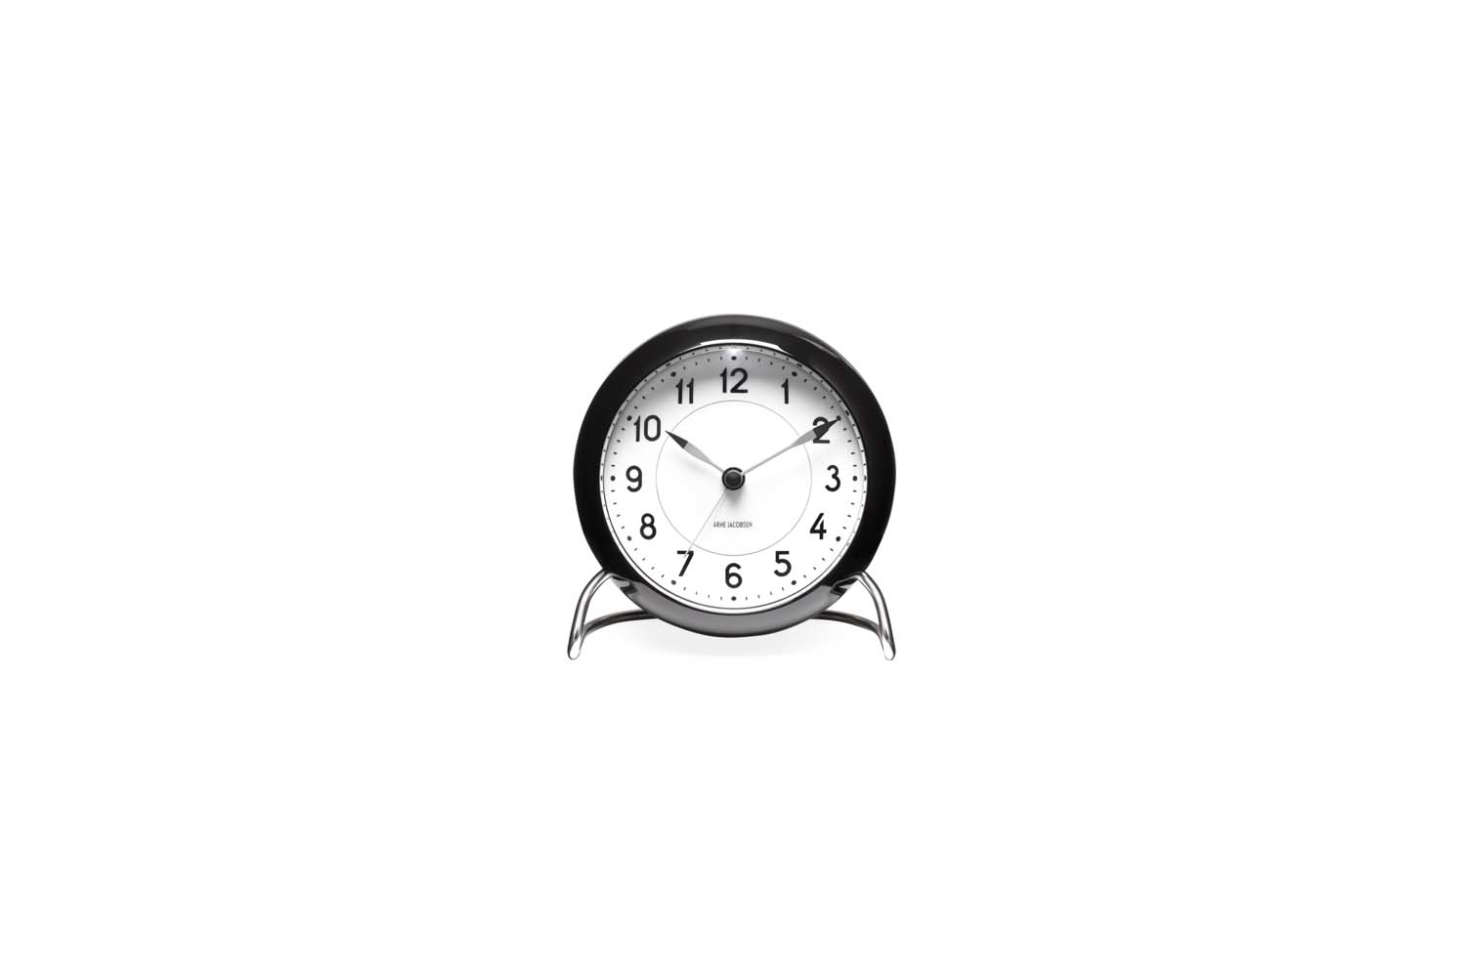 Designed by Arne Jacobsen, the classic Station Alarm Clock in black is $src=